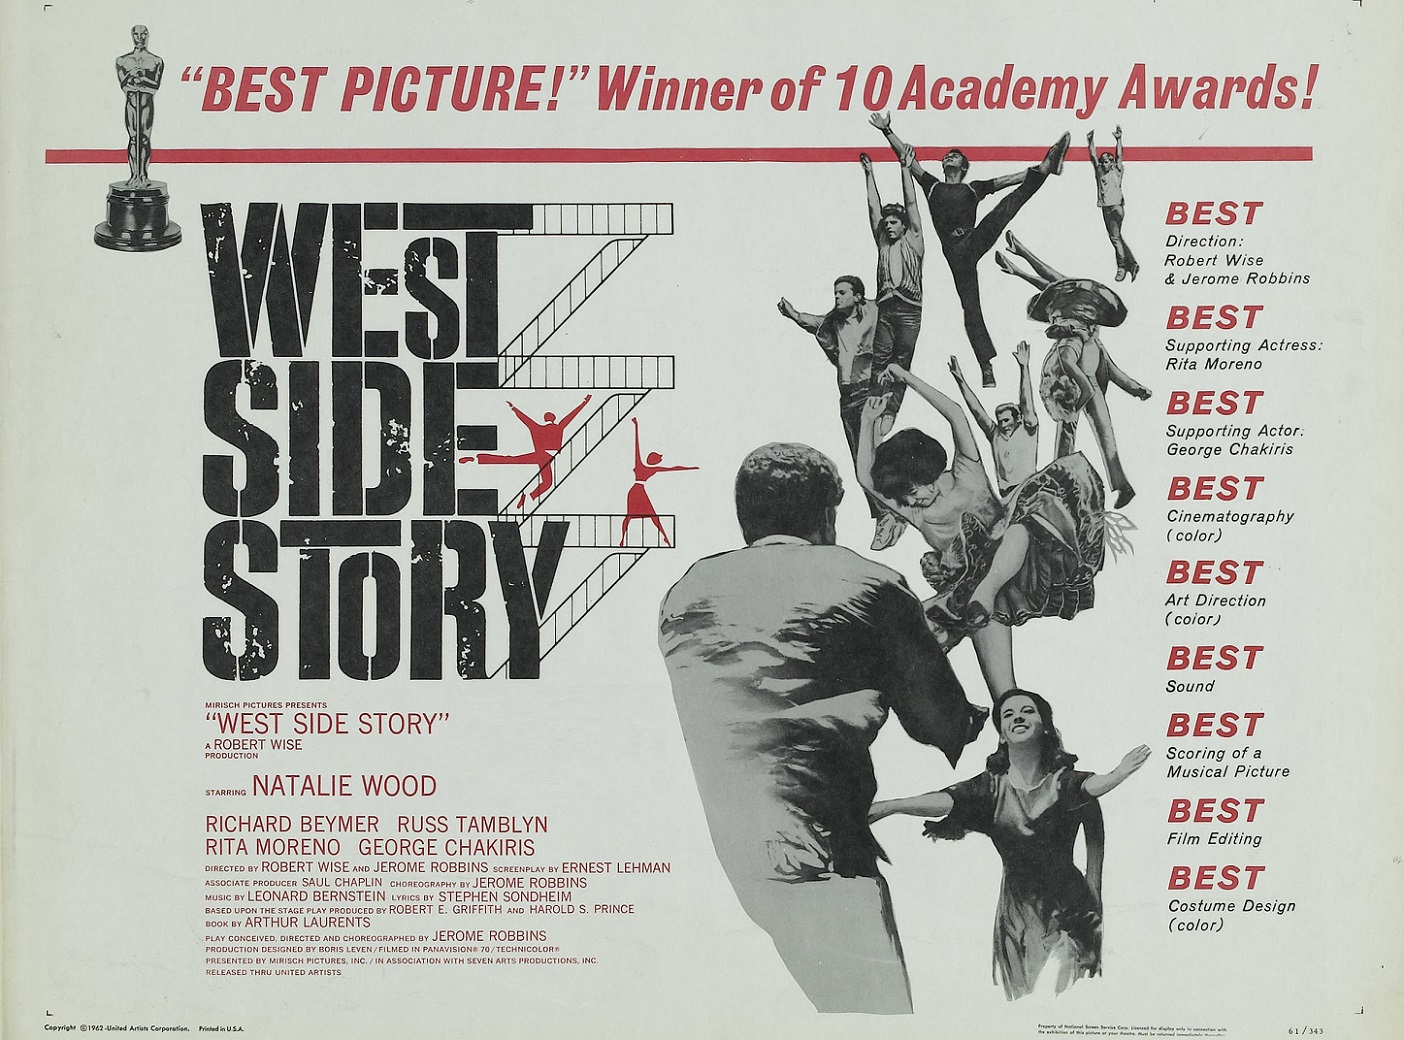 WEST SIDE STORY (1961)  WEB SITE